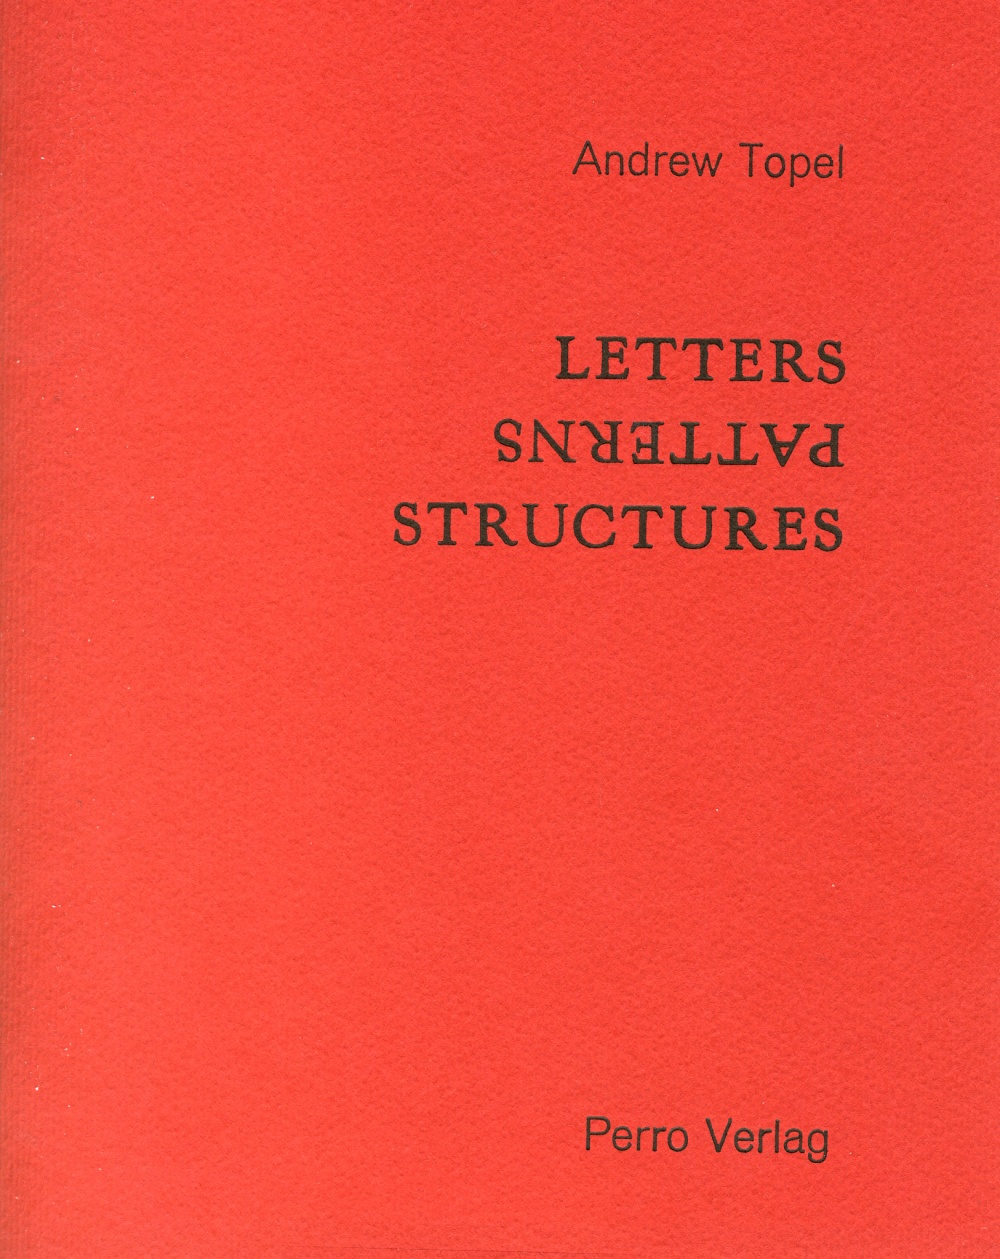 Letters Patterns Structures